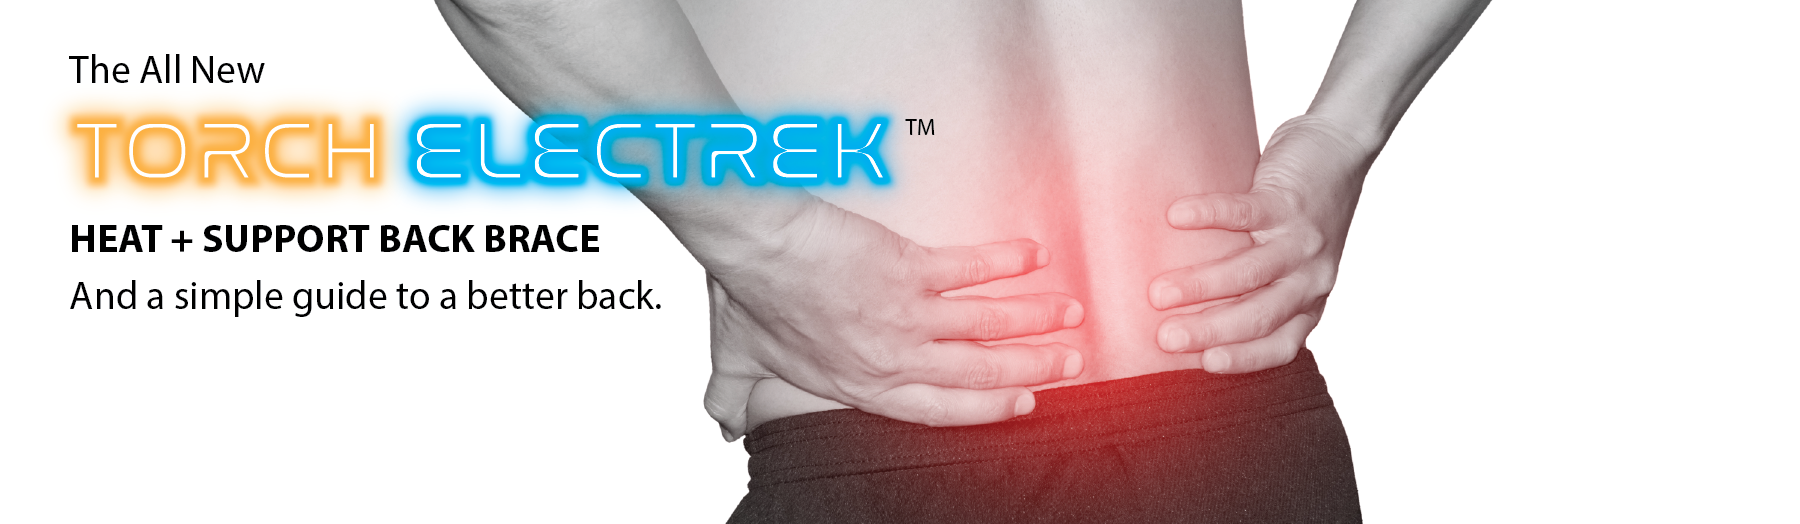 torch electrek heat + support back brace low back lumbar support for men and women.  battery powered adjustable rechargeable heat at the touch of a button